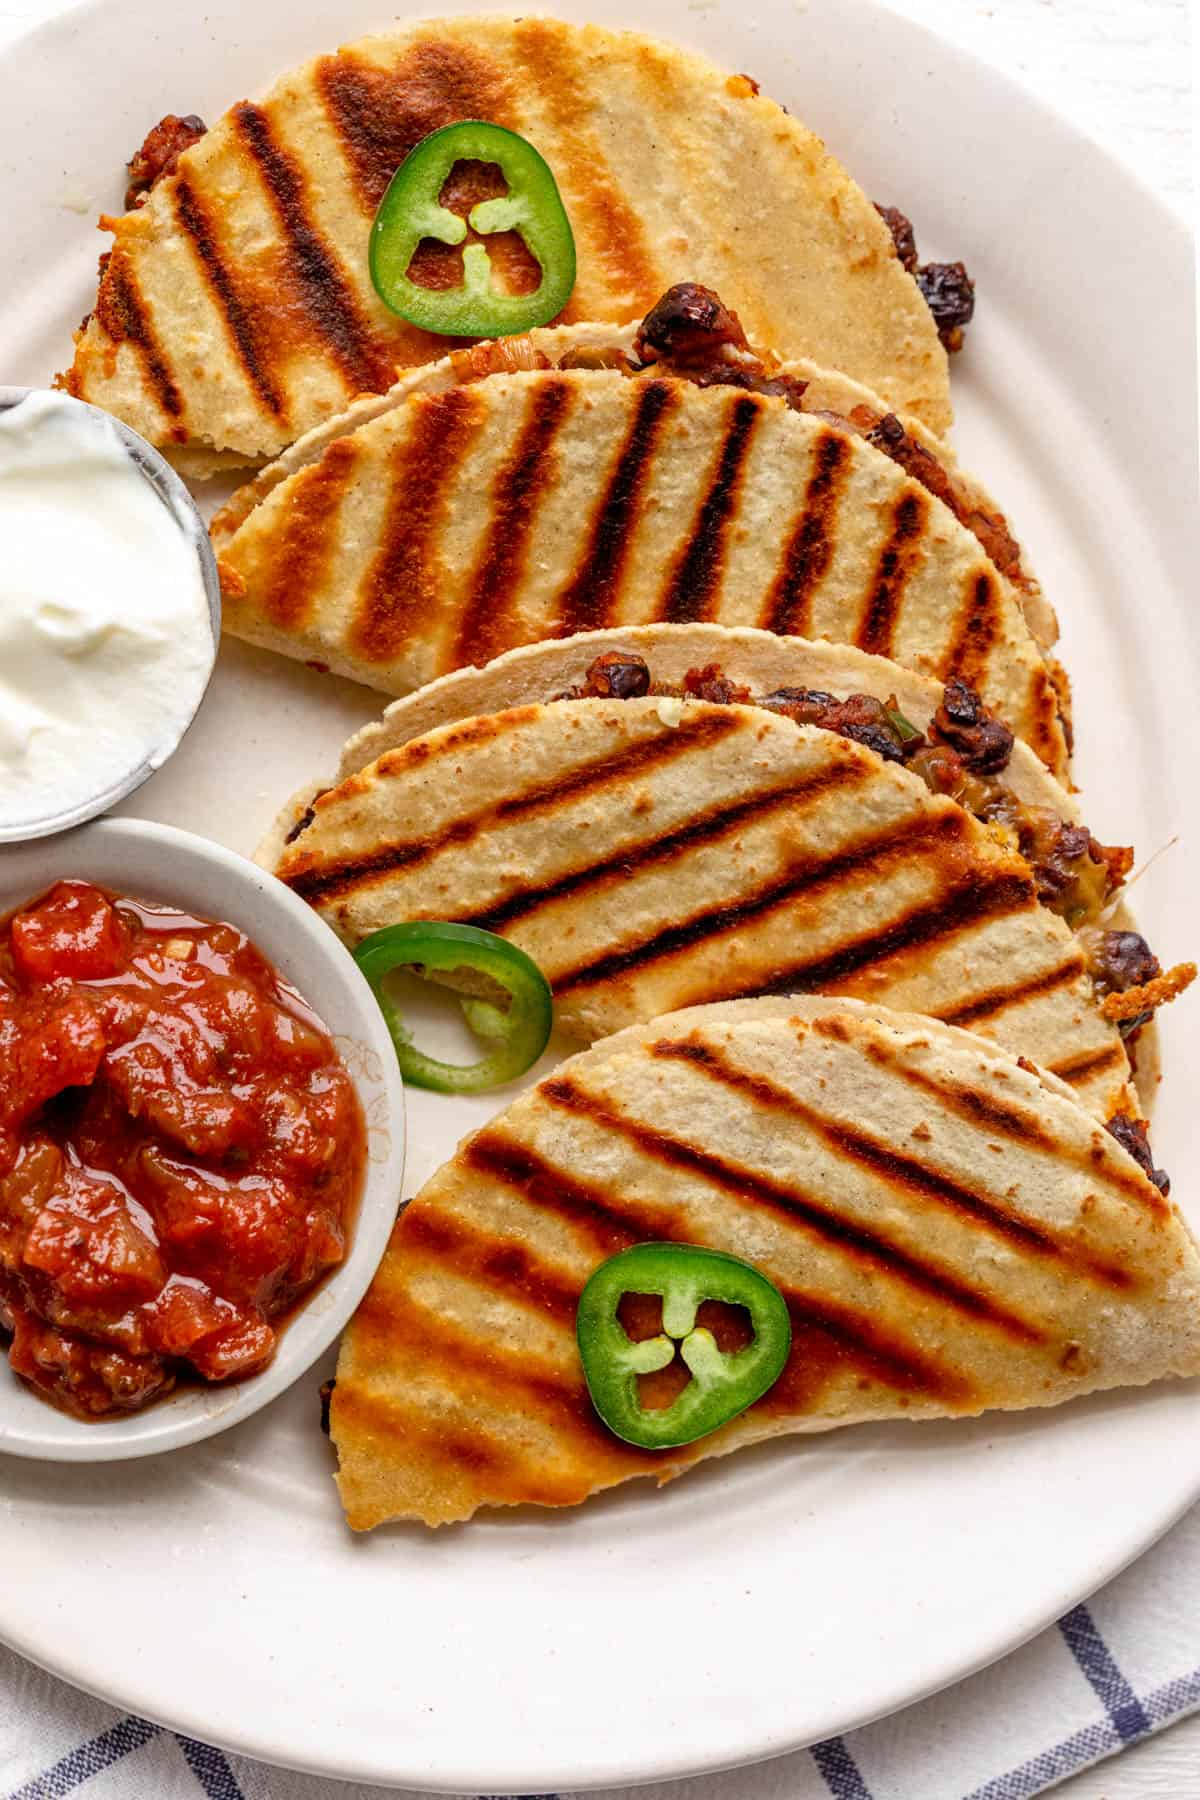 Close up shot of the quesadillas showing the grill marks